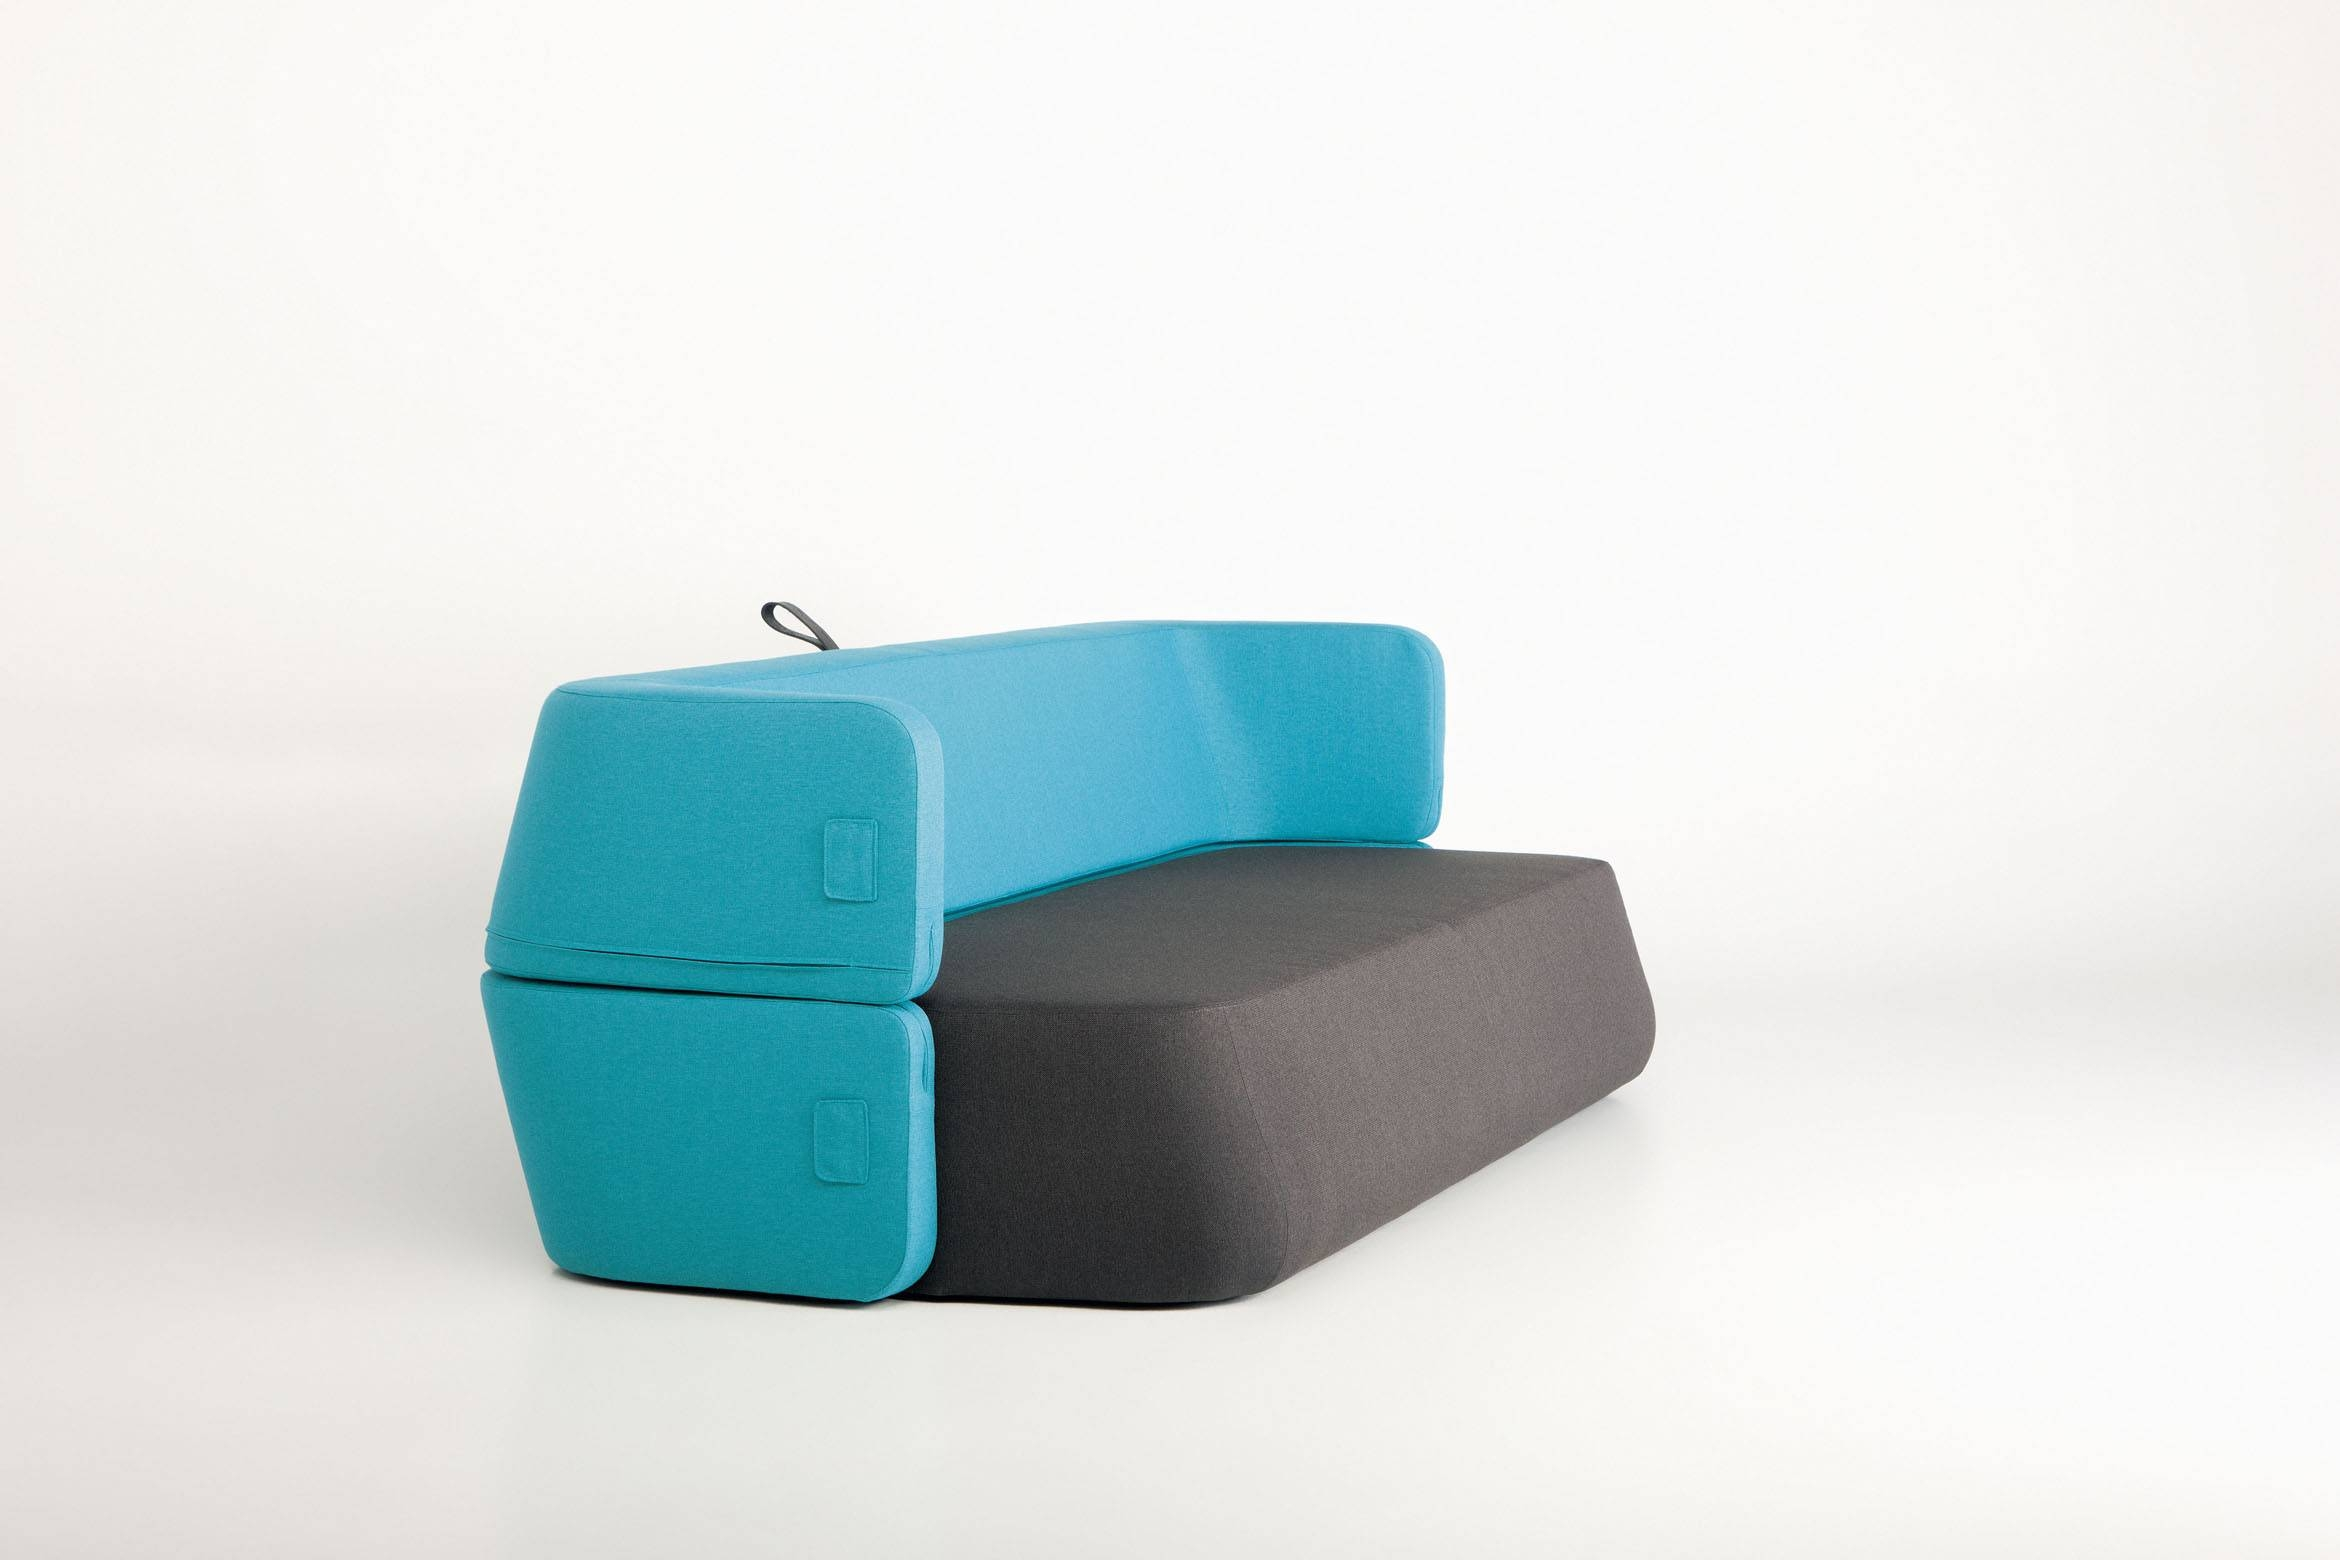 Collapsible Sofa In Collapsible Sofas (View 6 of 15)